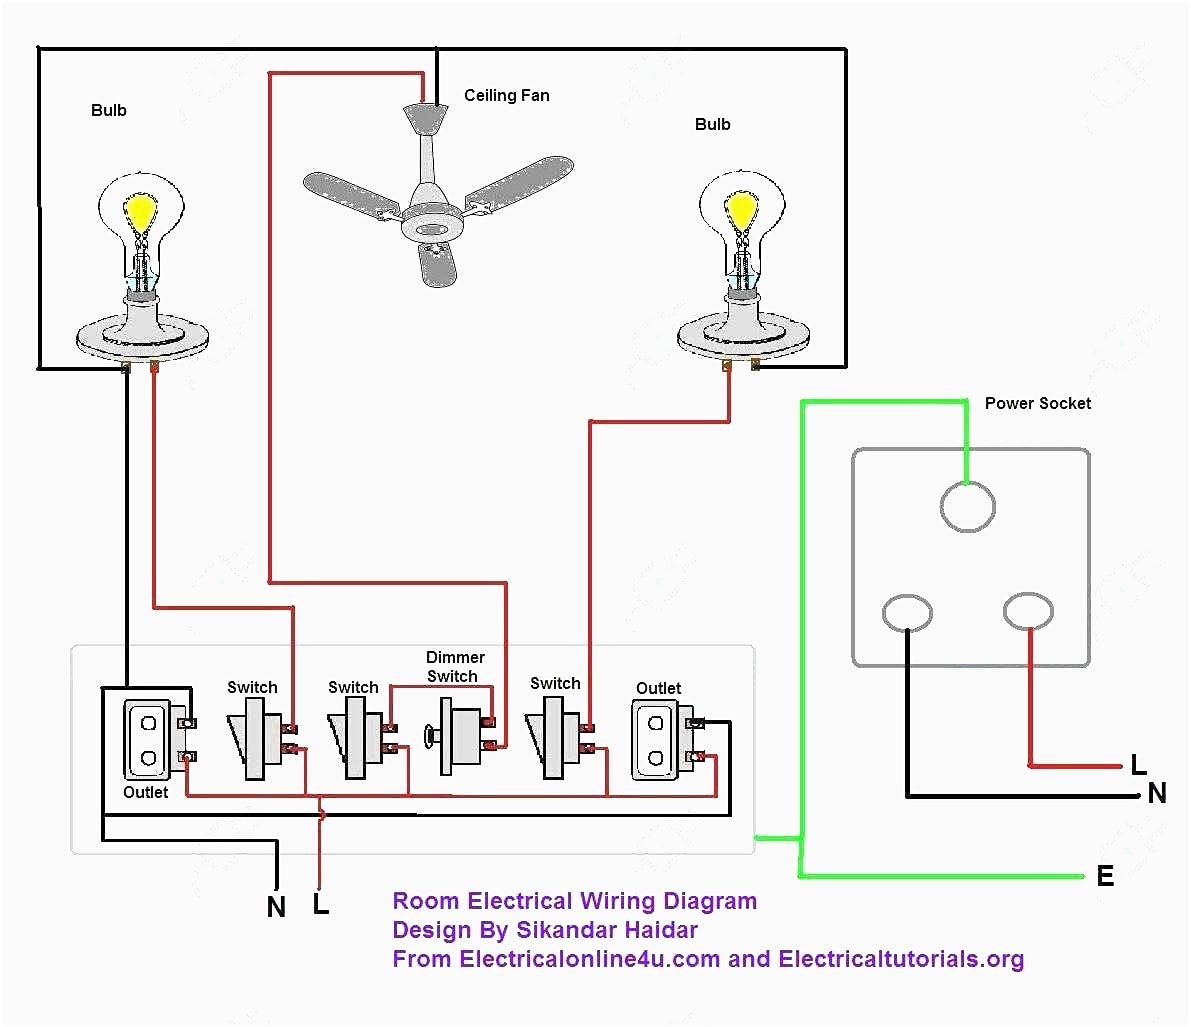 One Line Electrical Home Wiring Diagrams - Wiring Liry Diagram H7 Windmill Generator For Home Wiring Diagram on wind generator wiring diagram, 3 phase generator wiring diagram, stamford generator wiring diagram,